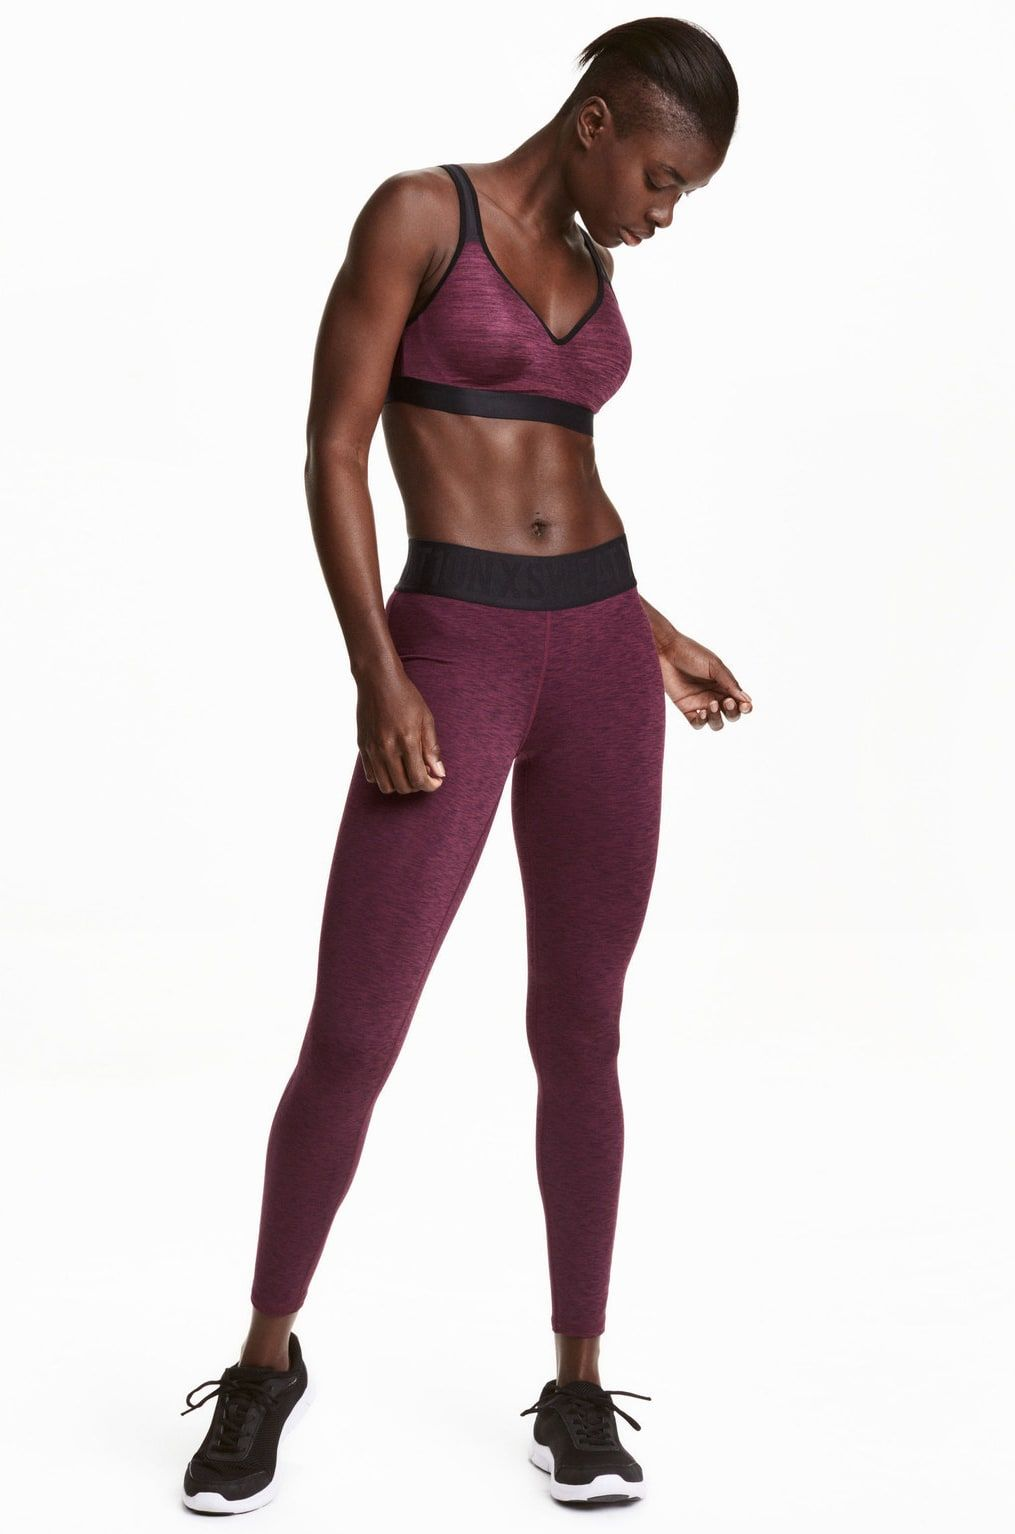 17 Places To Buy Workout Clothes That Are Cute And Affordable ... 8308b415d